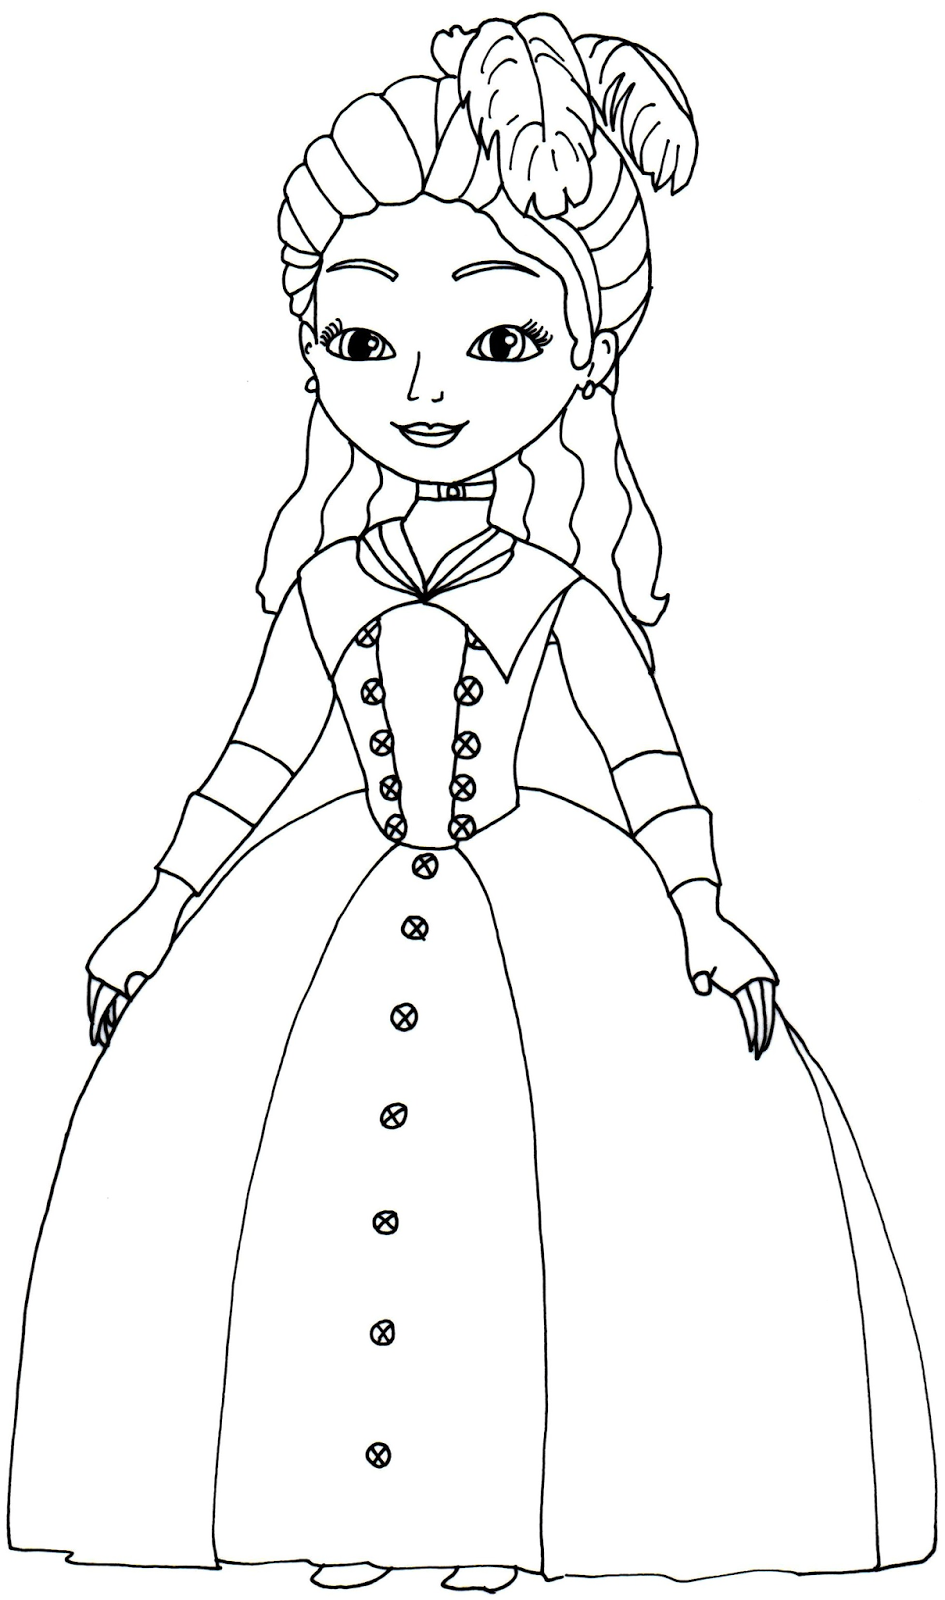 Prinzessin Sofia Die Erste Ausmalbilder : Sofia The First Coloring Pages Clio Eliyah S Board Pinterest